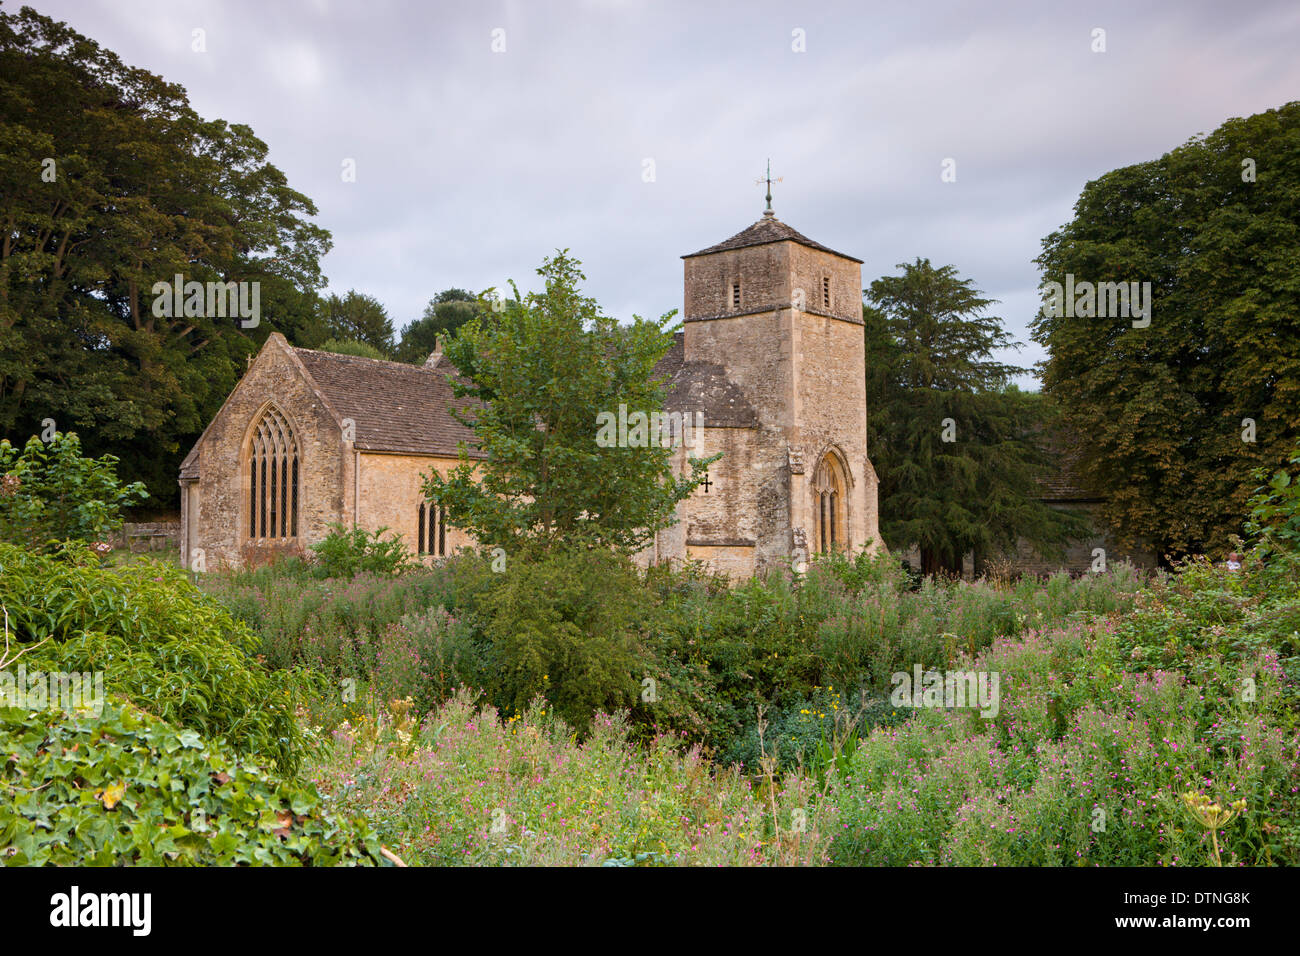 Eastleach Martin Church photographed from the verdant banks of the River Leach, The Cotswolds, Gloucestershire, England. - Stock Image